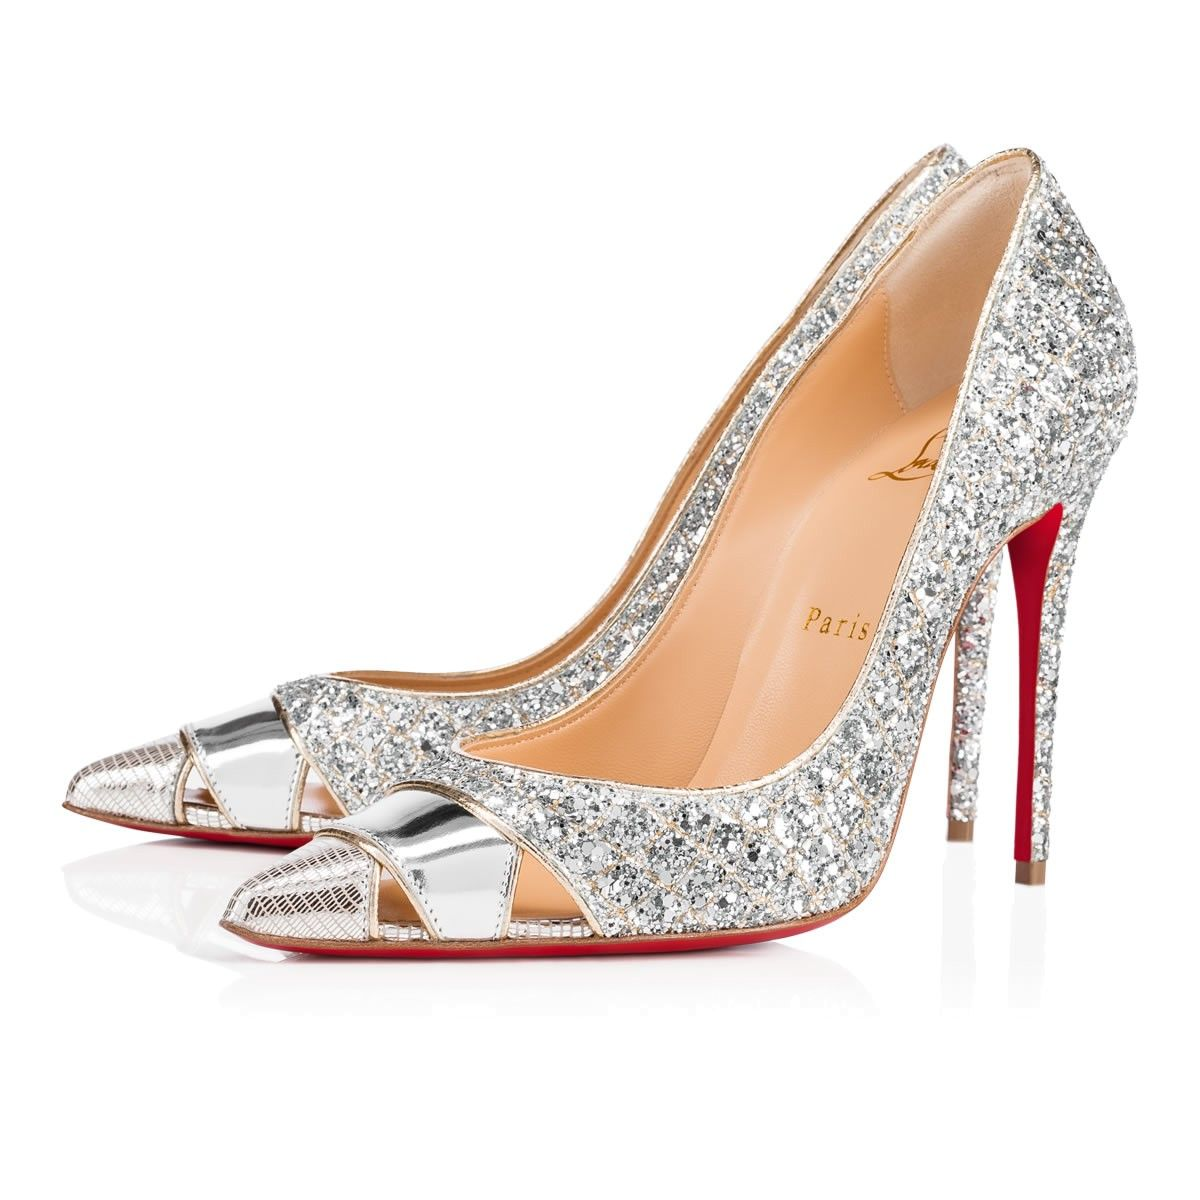 d8a48b83247 Christian Louboutin United States Official Online Boutique - Biblio 100  Silver Platine Glitter available online. Discover more Women Shoes by  Christian ...